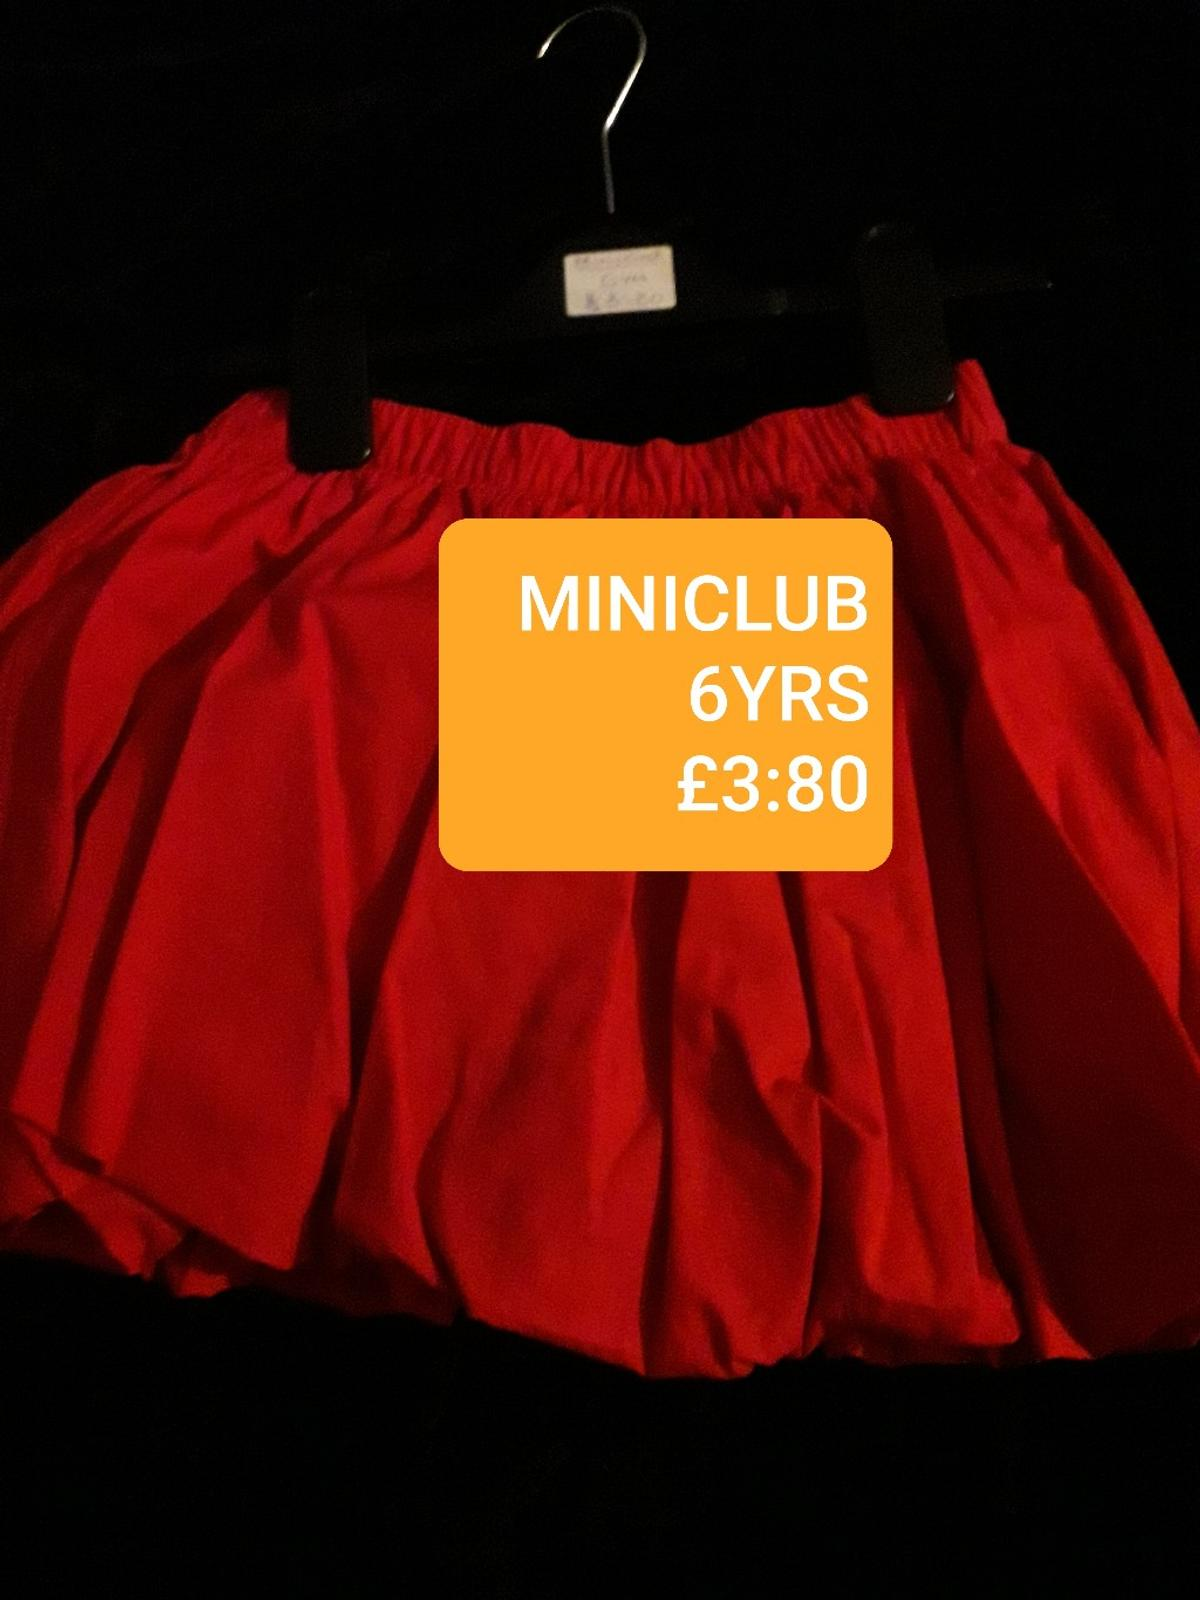 THE LAST SKIRT IS £3:99. THEY ALL ARE OFF EXCELLENT QUALITY.. PLEASE MESSAGE ME FOR DETAILS. WILL LOOK FOR CHEAPEST POSTAGE. OR BUYERS CAN COLLECT IN A SAFE ENVIRONMENT.